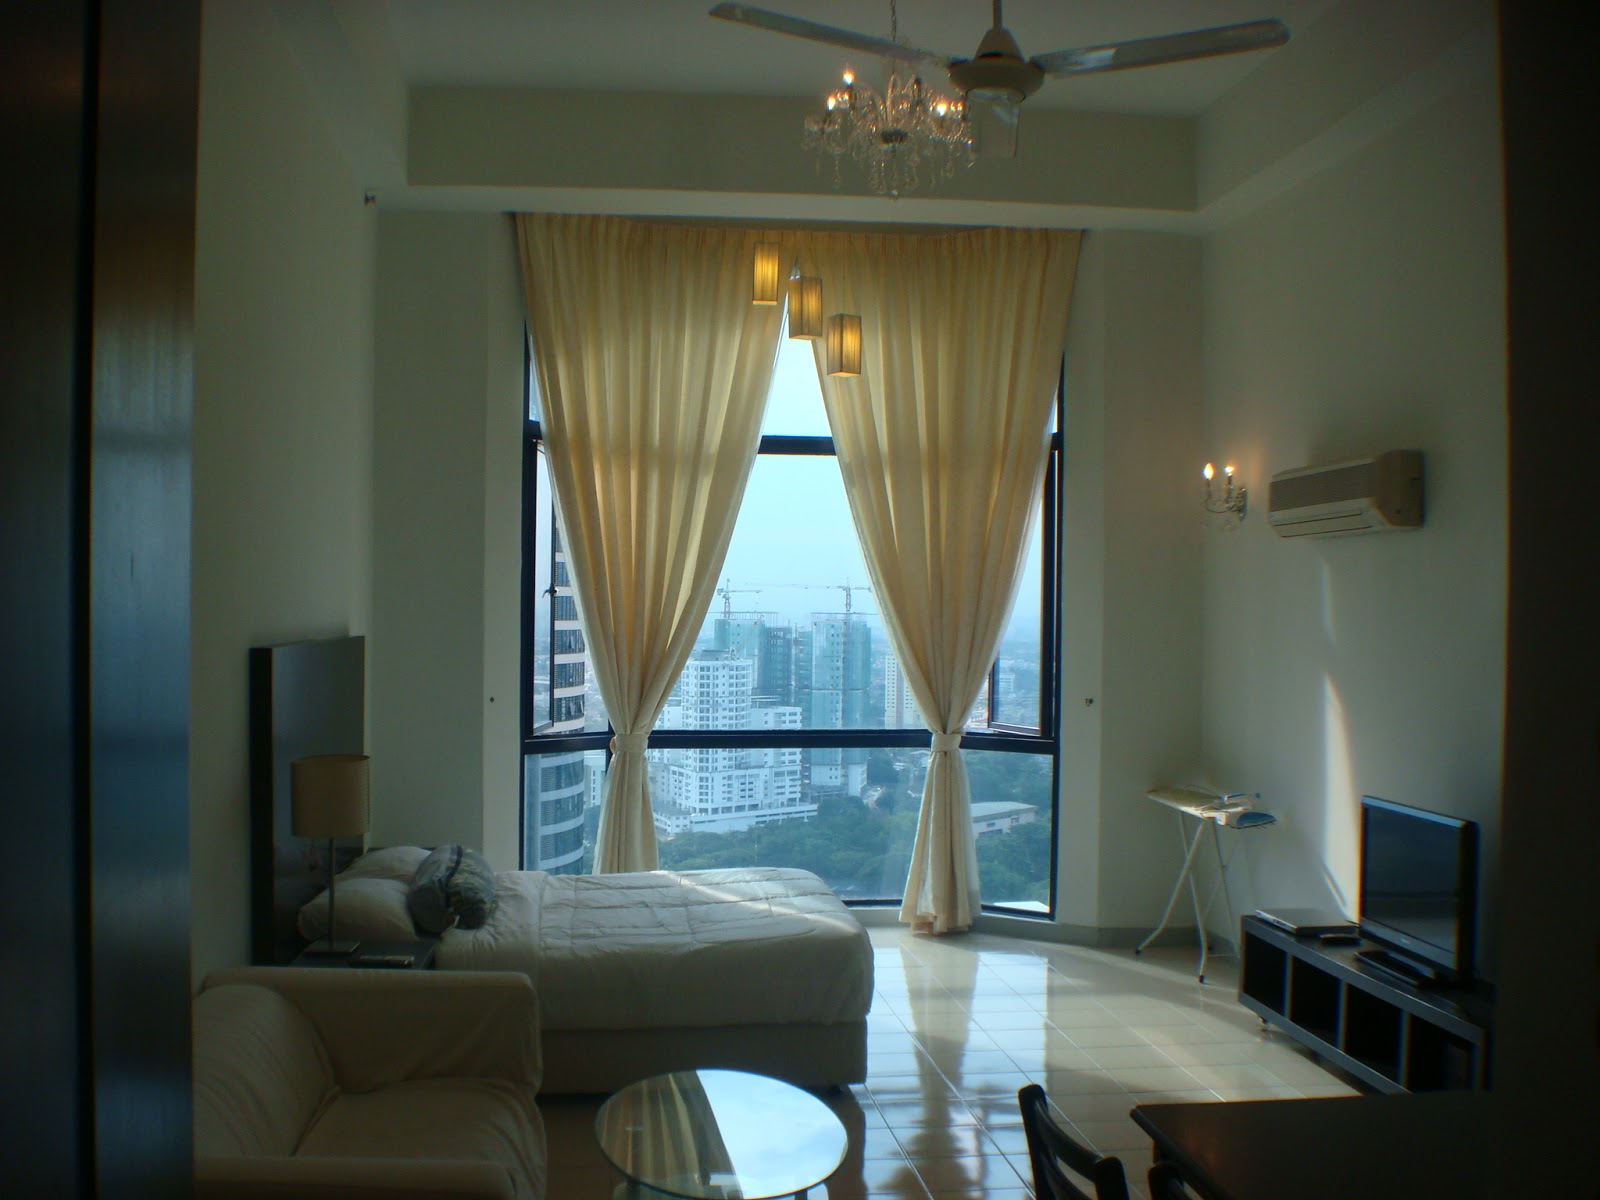 We Have Studio And Two Bed Room Type Of Apartment To Rent